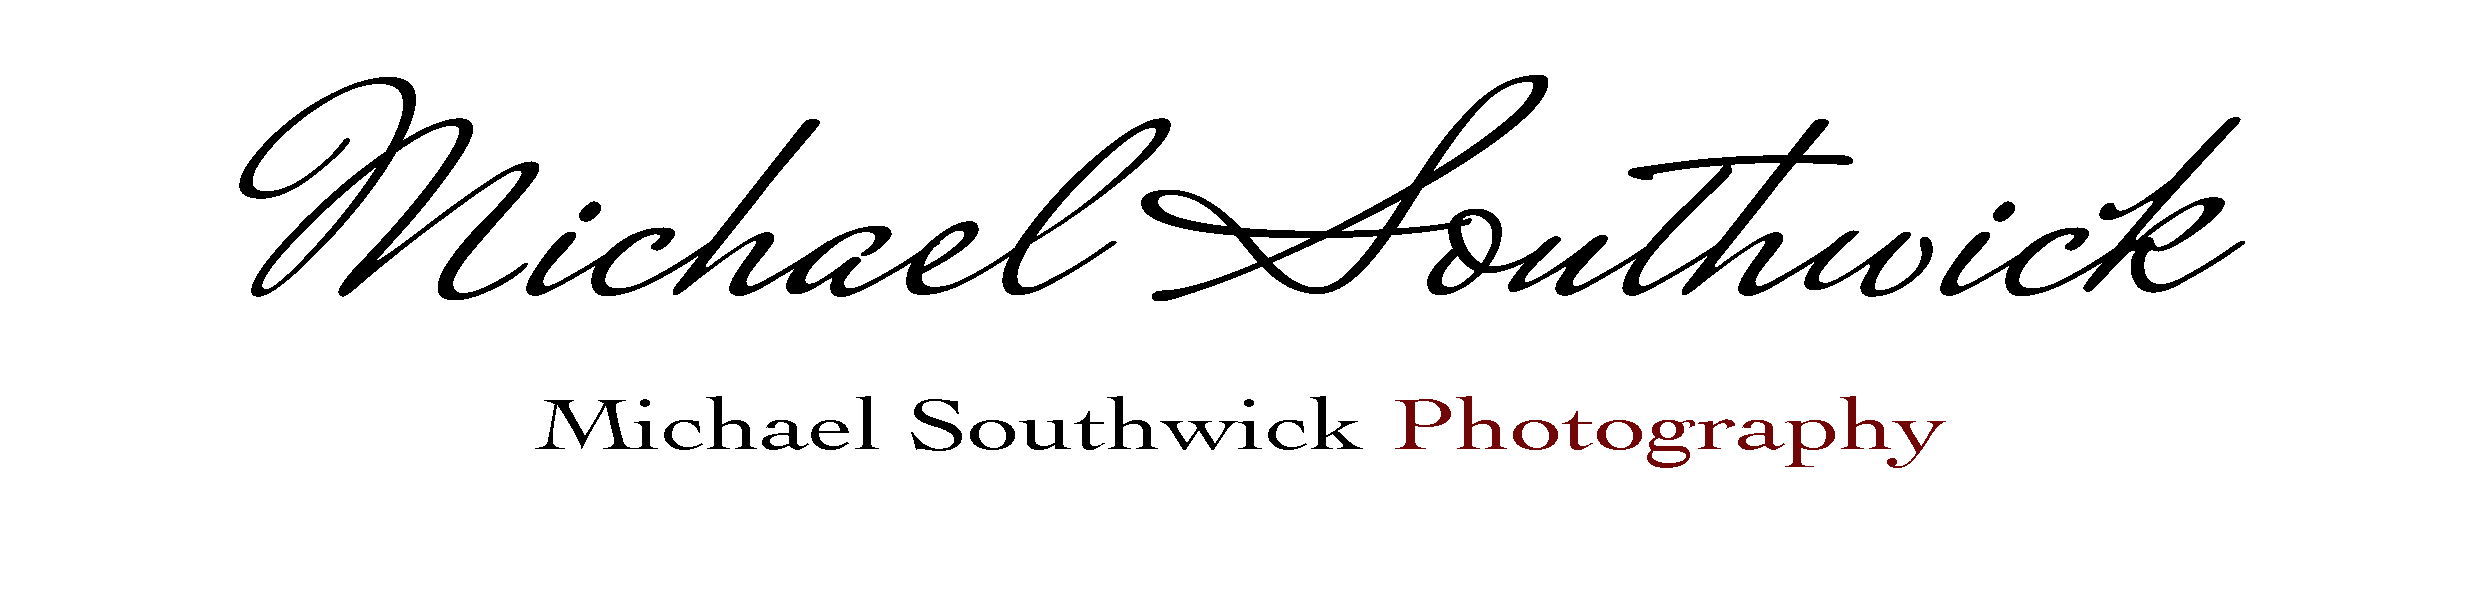 michaelsouthwickphotography